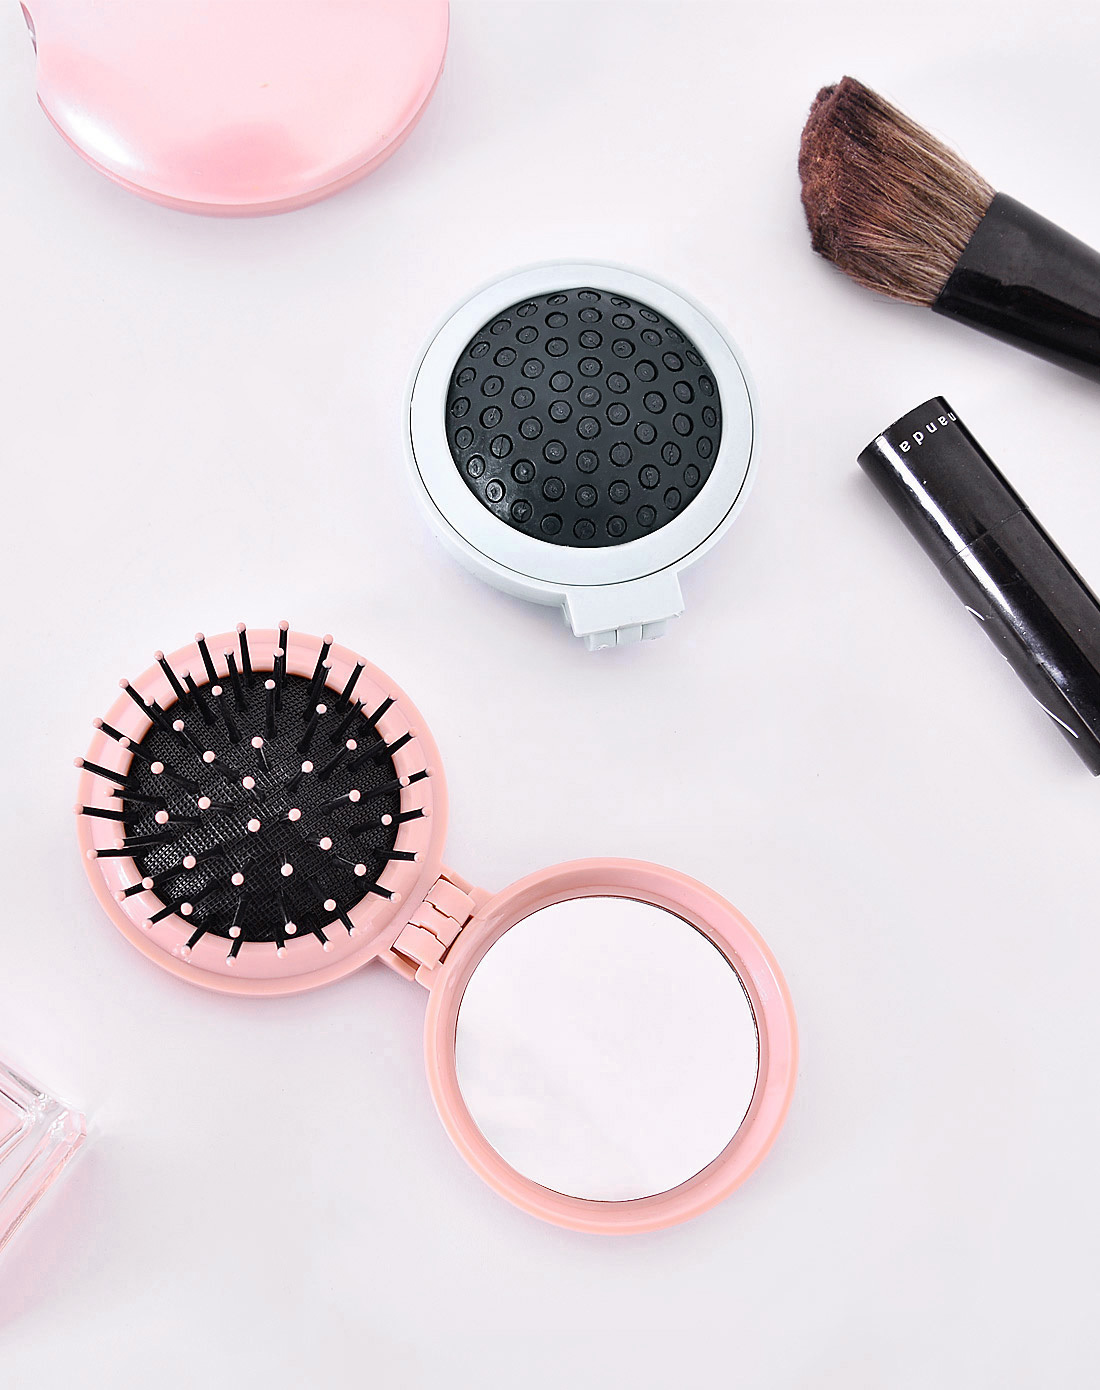 Luxury Massage Hairdressing Princess With Hair Tt Portable Fund Comb Bring Mirror 2 in 1 rainbow comb volume hair brush hairdressing mirror tool travel household necessity